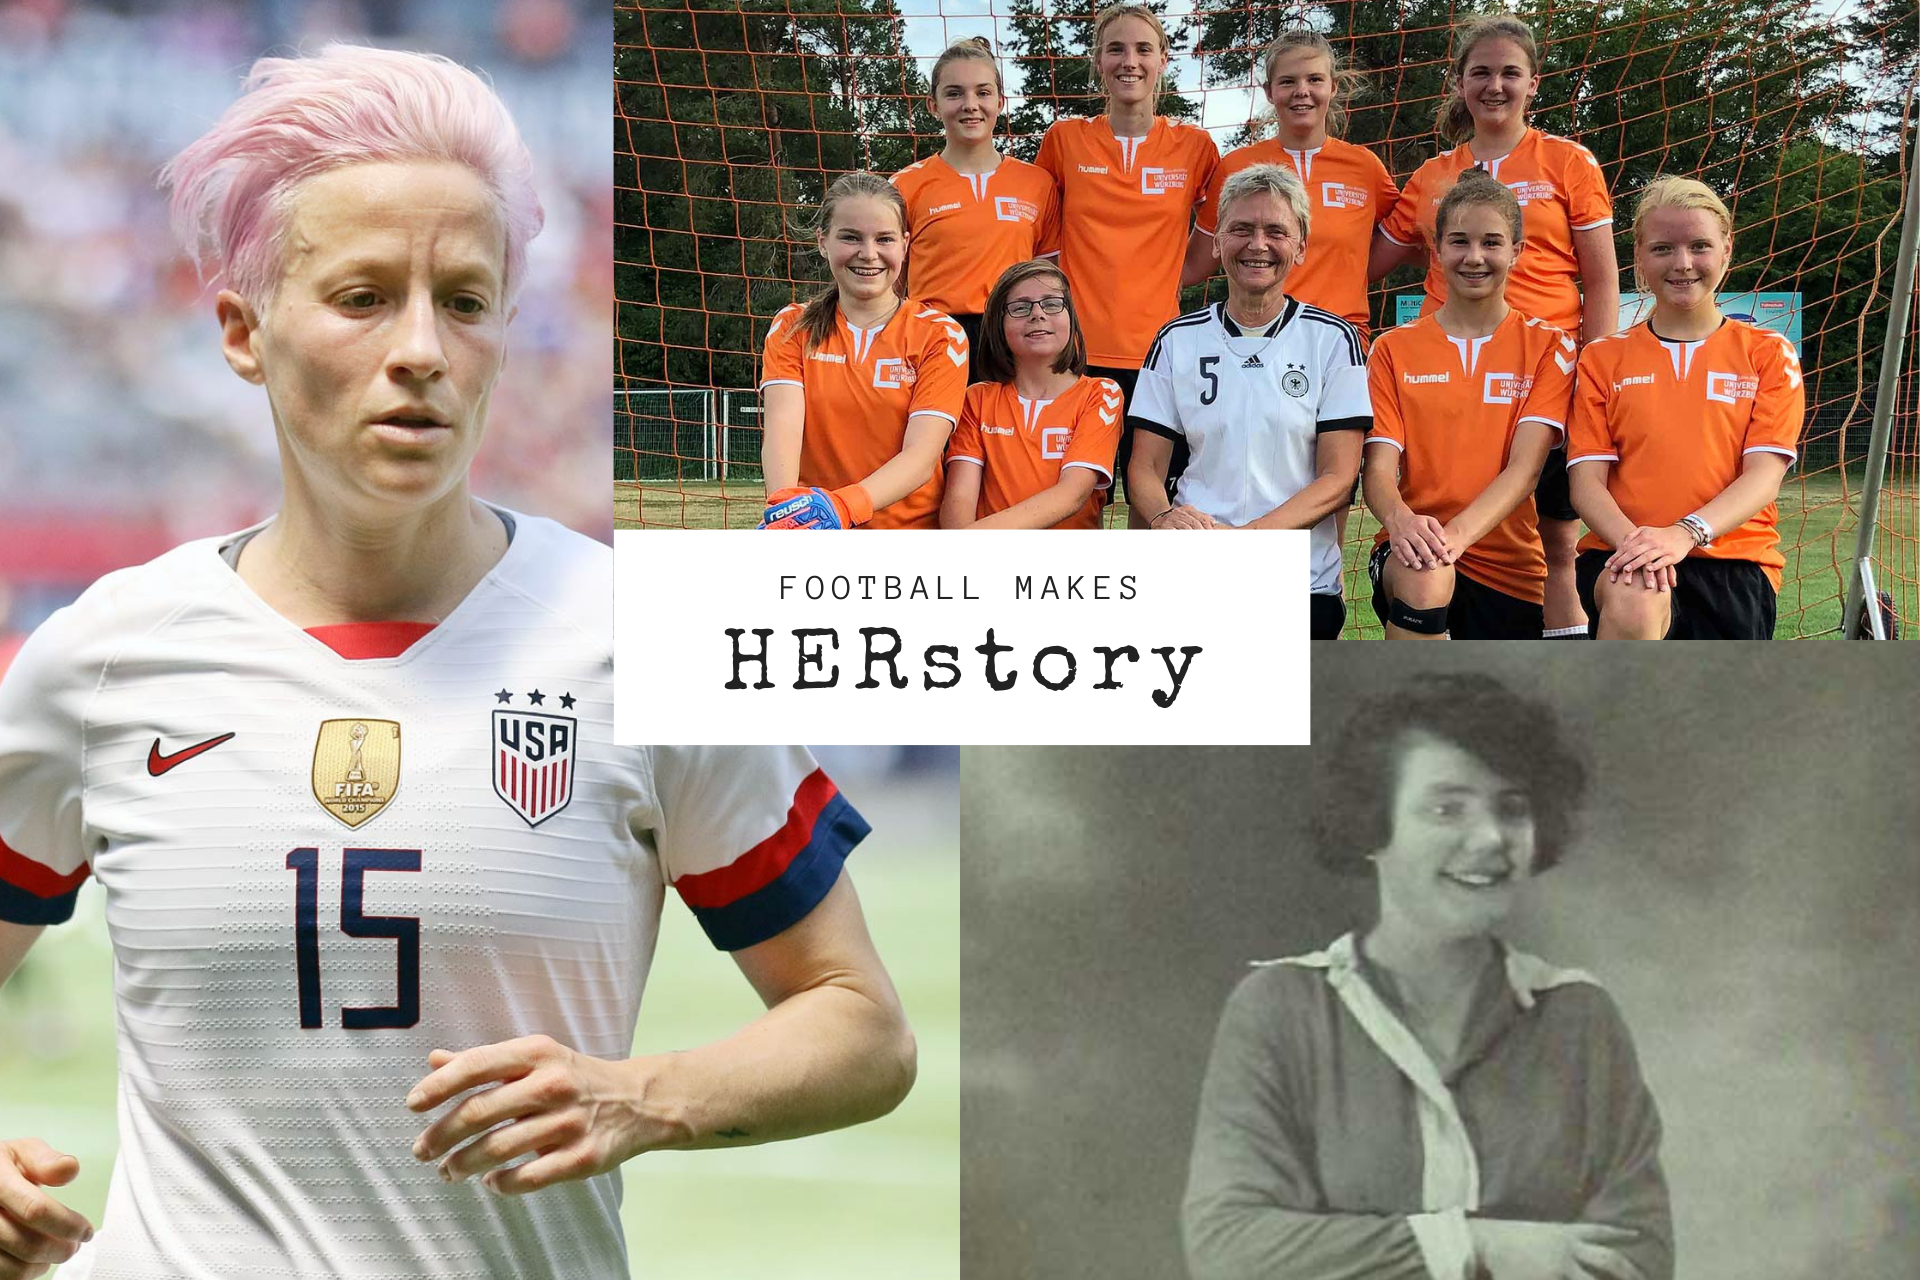 FMH Photo collage (Megan Rapinoe, Photo: Jamie Smed, Wikimedia Commons; Petra Landers, Photo: Heinz Reinders, Wikimedia Commons; Carmen Pomies, Photo: Très Sport).